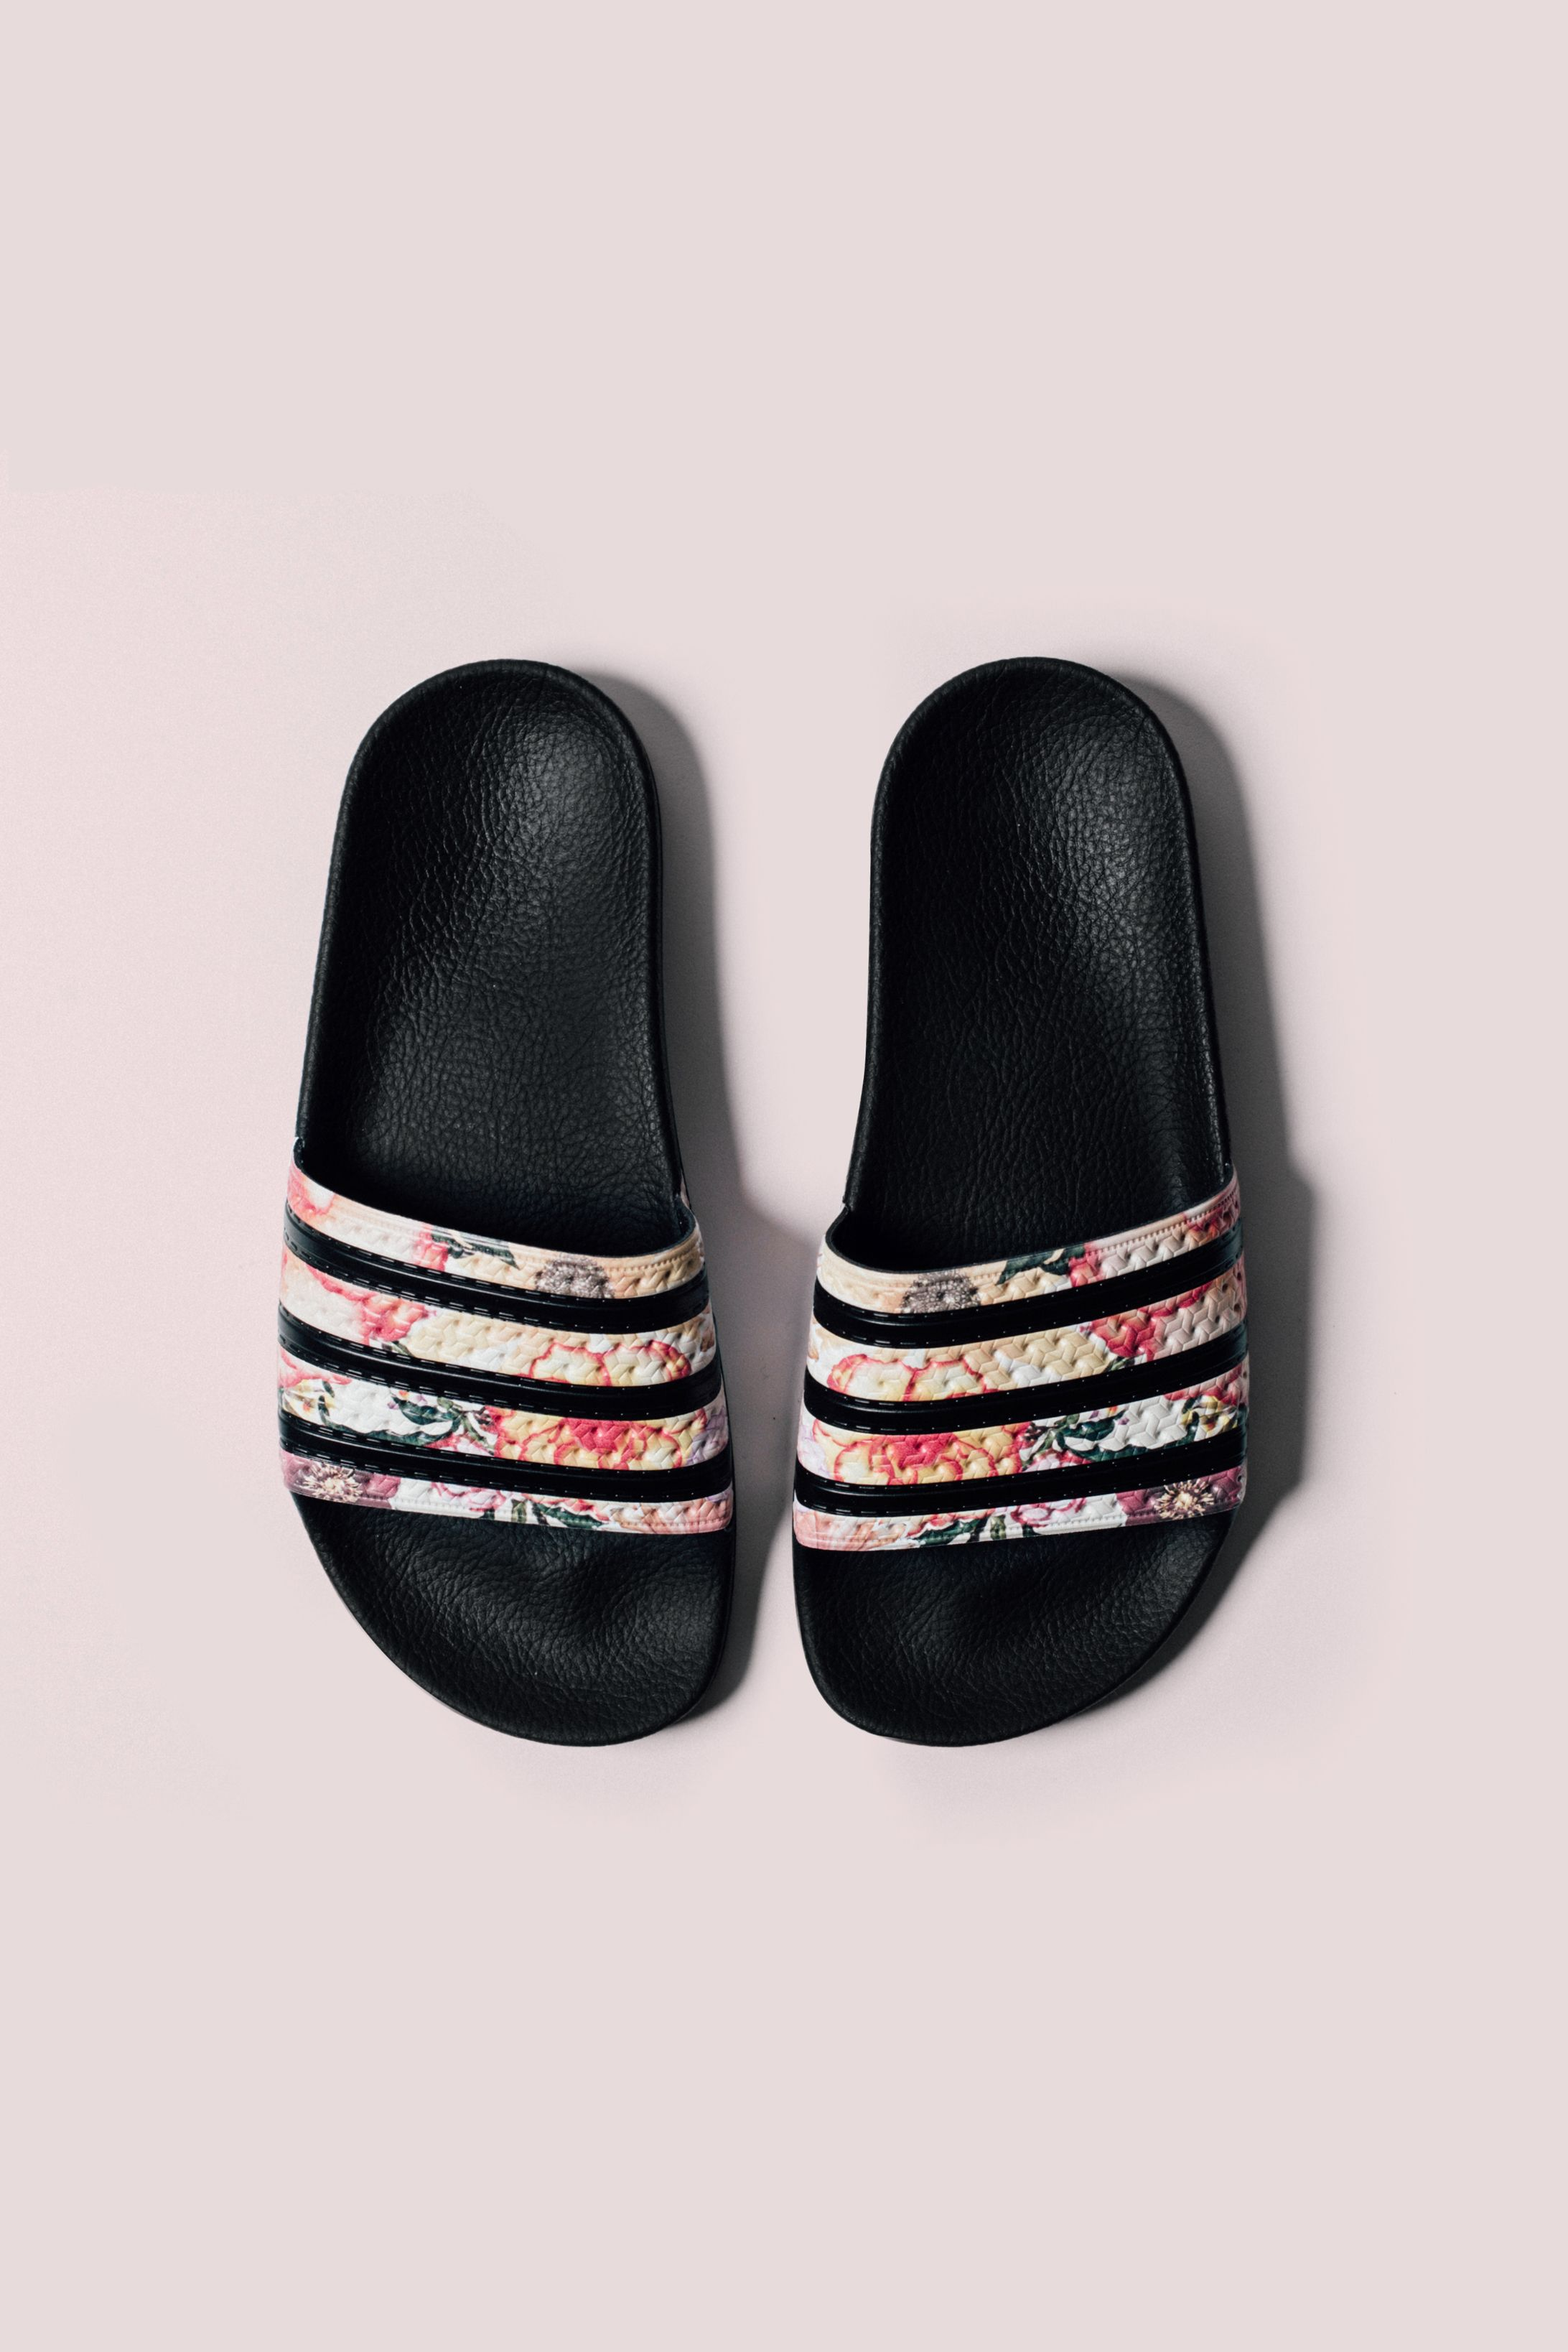 2c262f52499e Adidas Originals x Farm Women s Adilette Slides  Adidas  Adilette  SlipOns   Sandals  Fashion  Streetwear  Style  Urban  Lookbook  Photography  Footwear  ...